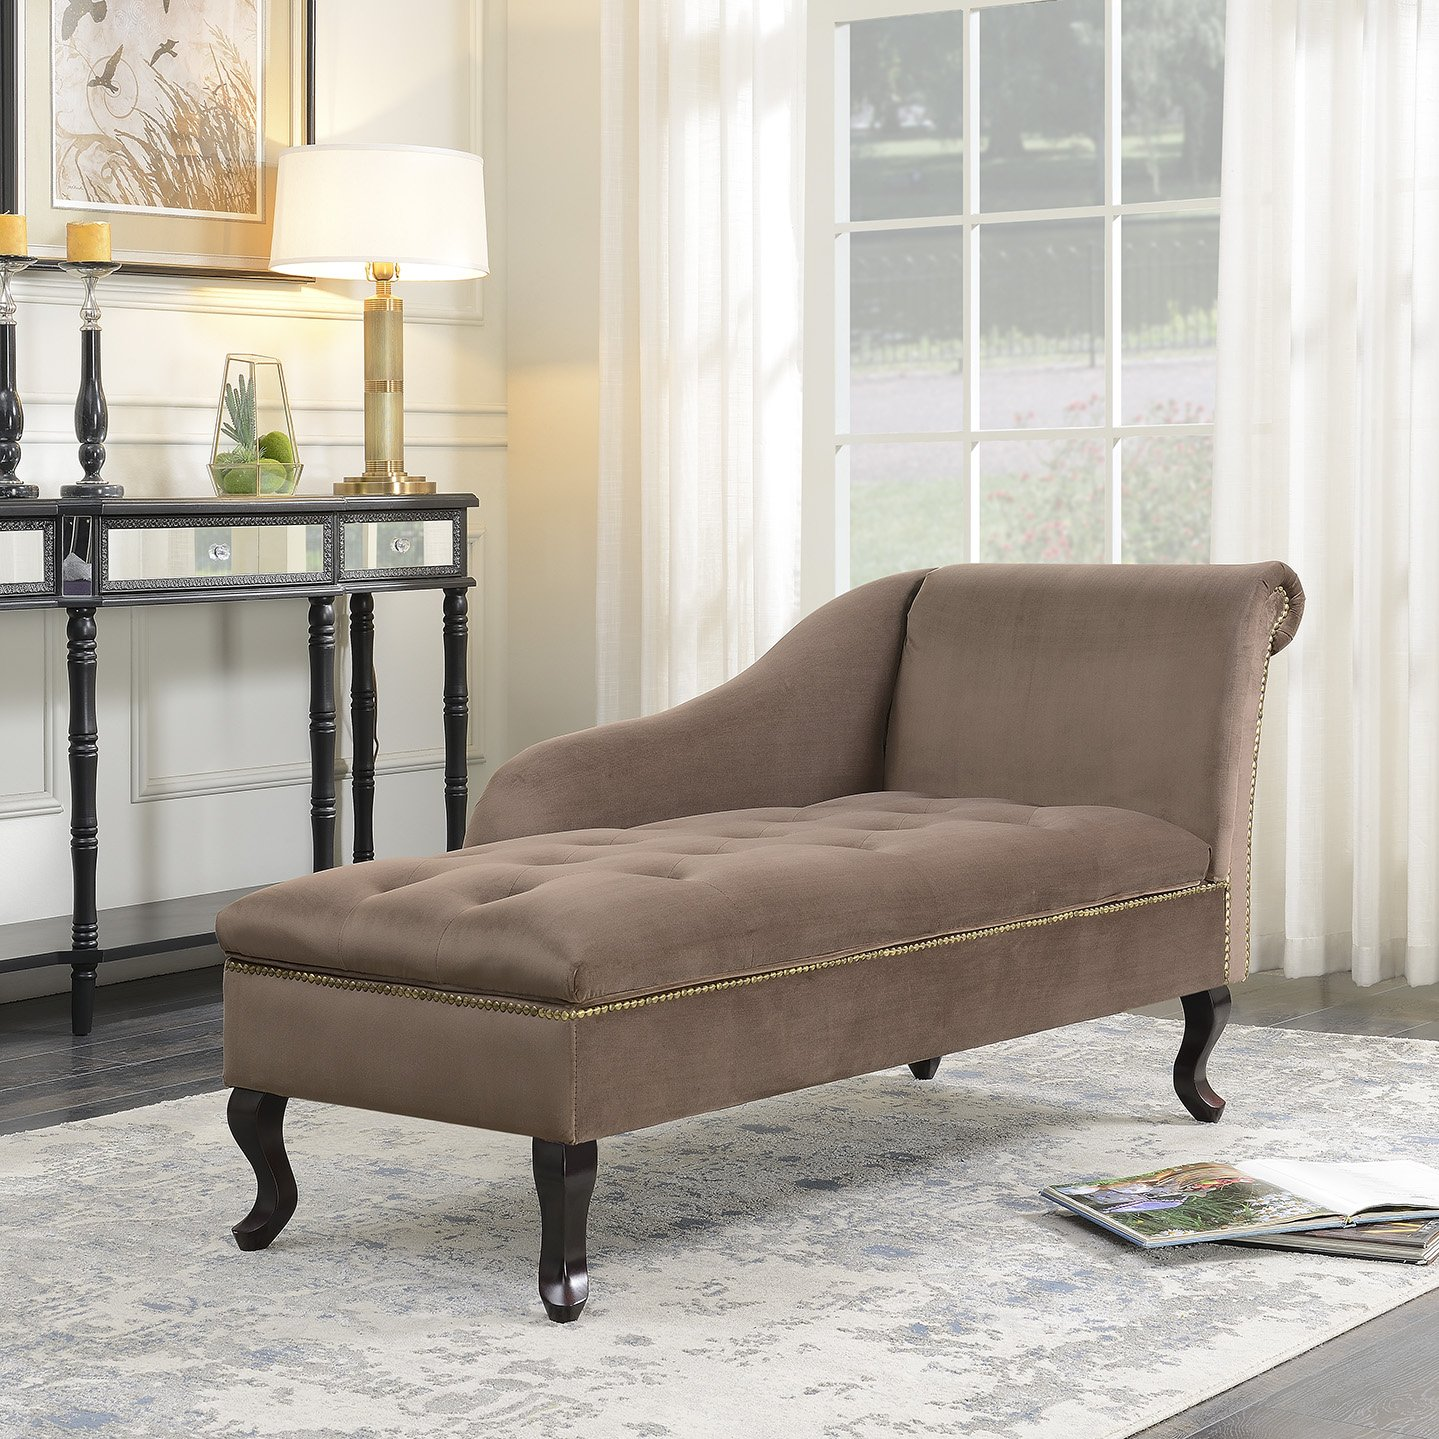 Belleze Velveteen Tufted Open Fold Spa Chaise Lounge Chiar Couch for Living Room Gold Nailhead Trim with Storage, Brown